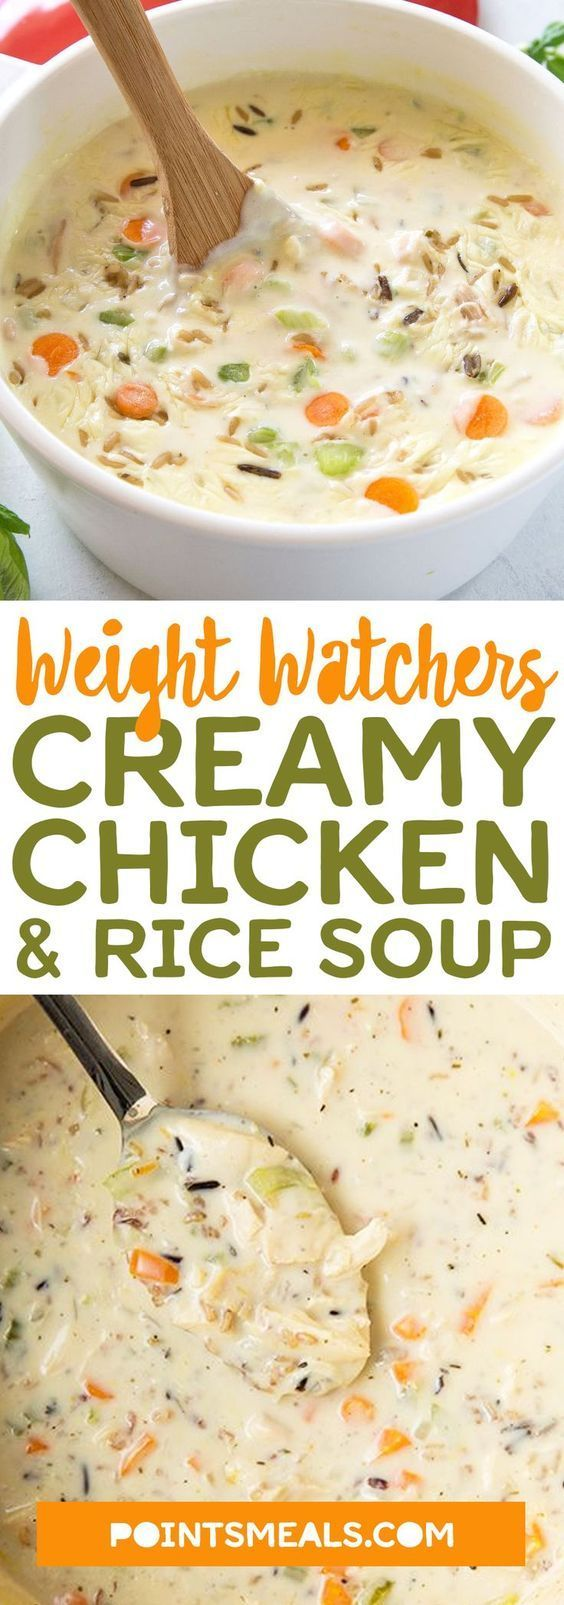 Creamy Chicken & Rice Soup (slow cooker) #weight_watchers #soup #dinner #ricecookermeals